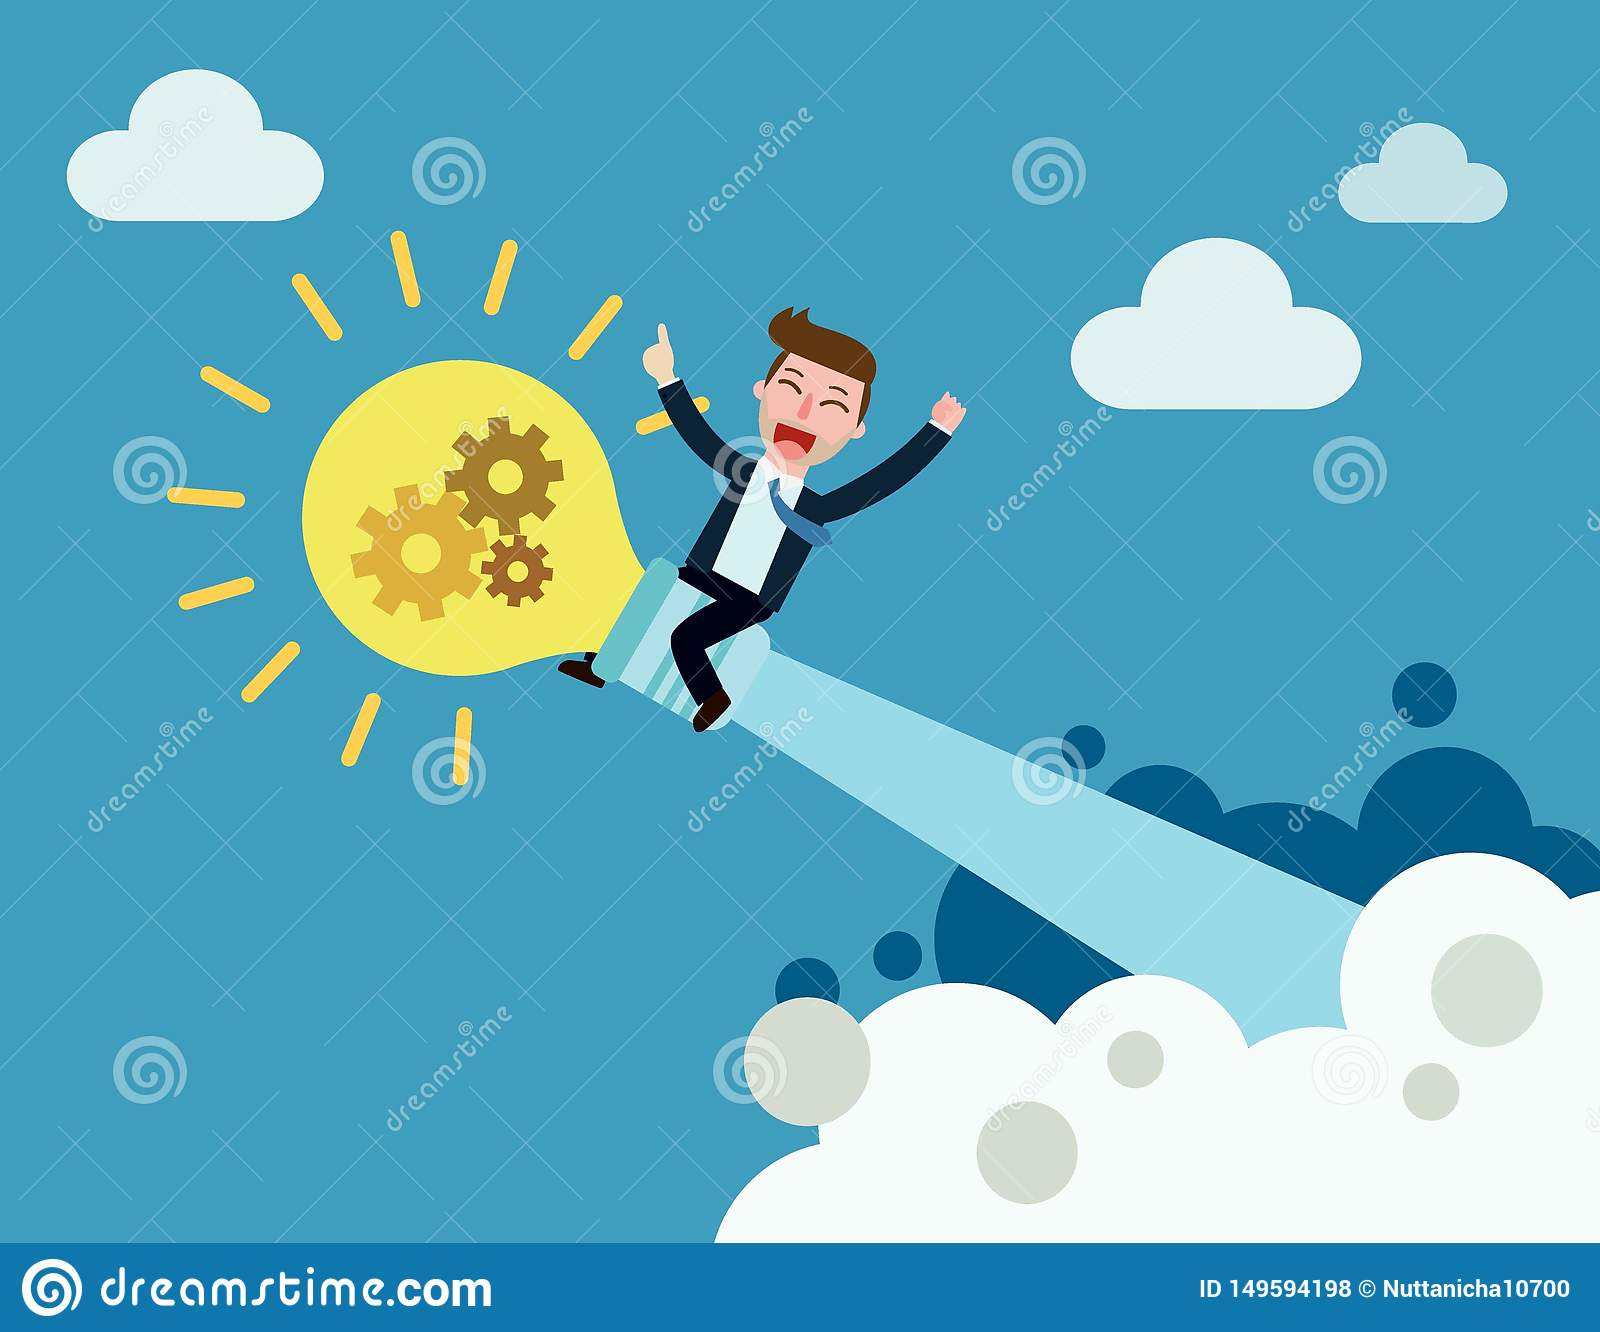 Business Vector flat cartoon design. banner background concept